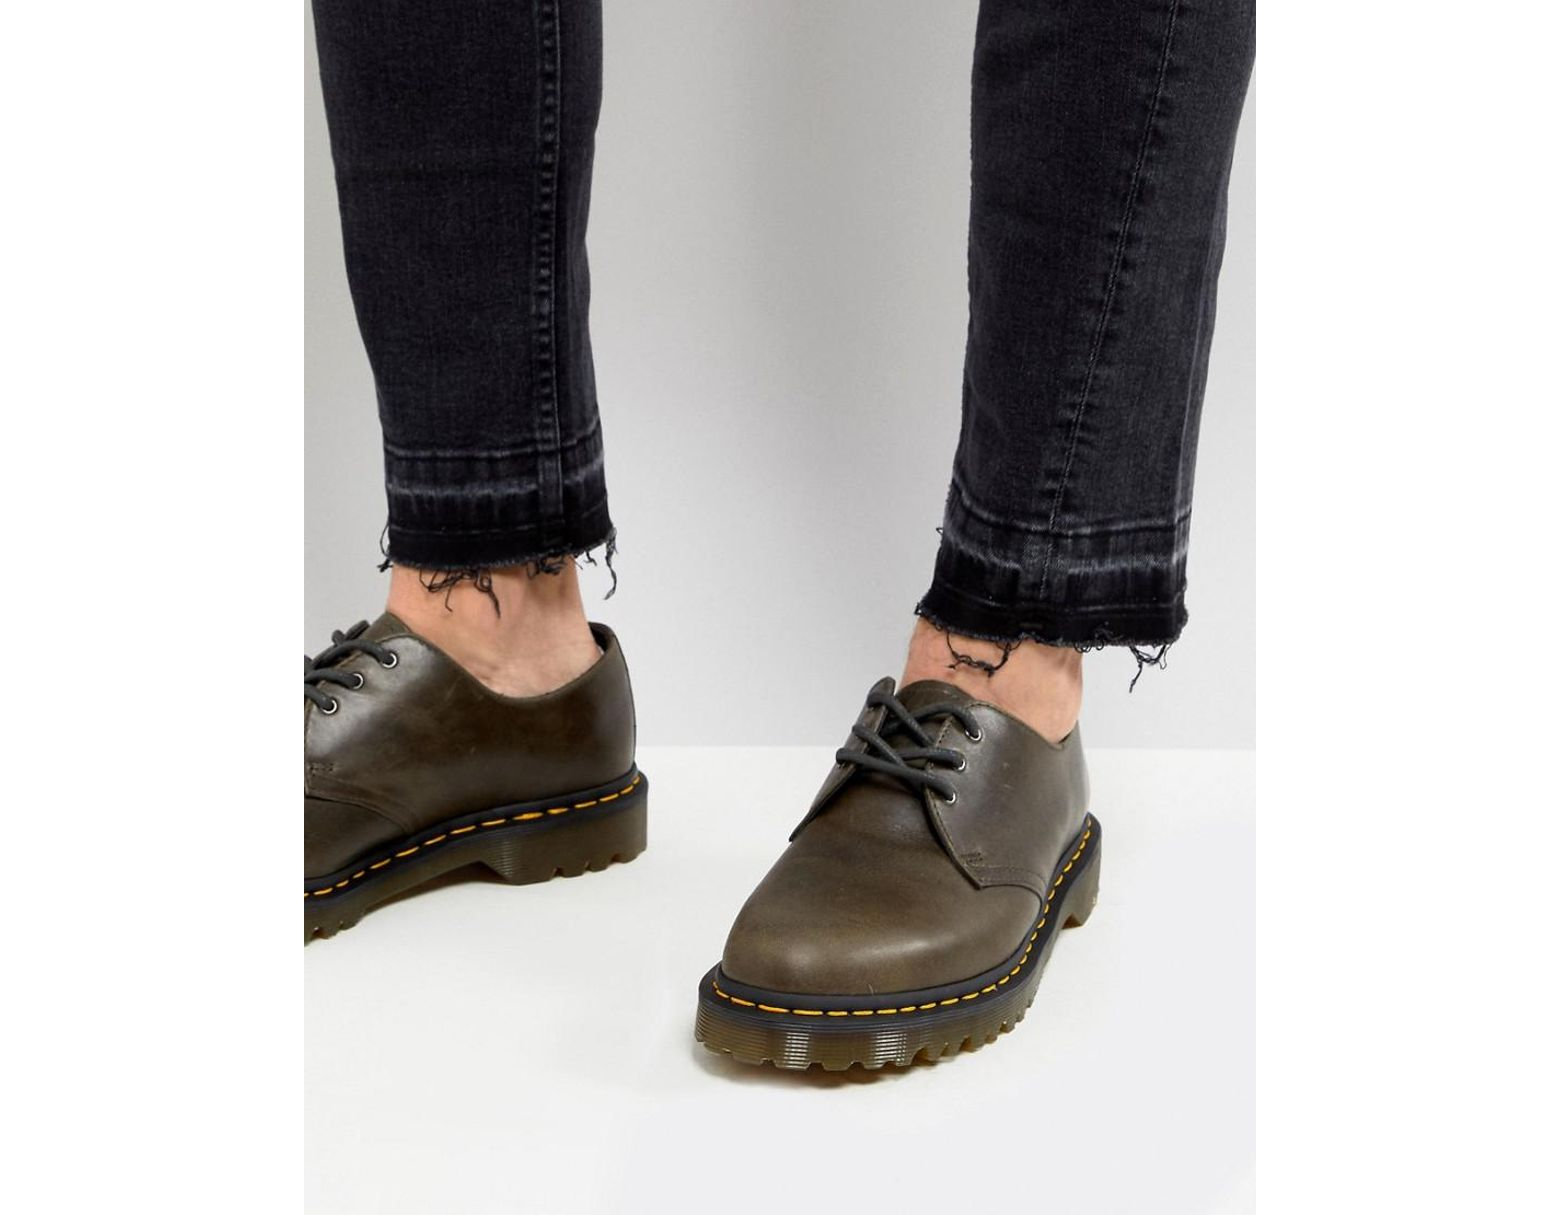 bff54690b2 Dr. Martens 1461 3-eye Shoes In Dark Taupe in Brown for Men - Lyst